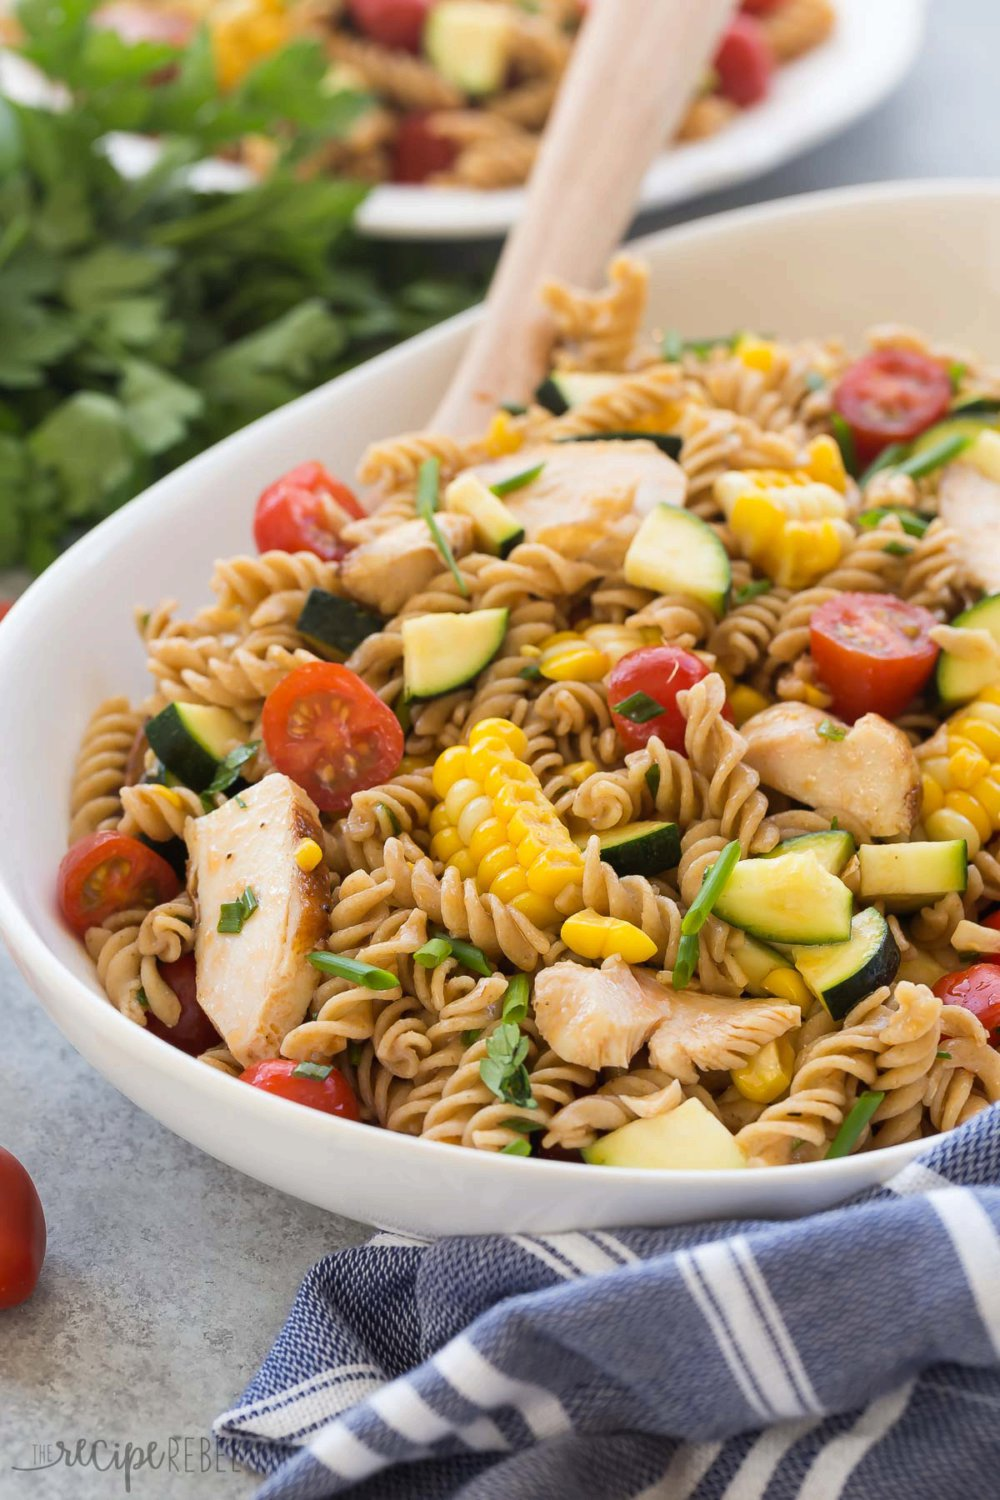 BBQ Chicken Pasta Salad with Tomatoes, Zucchini and Corn